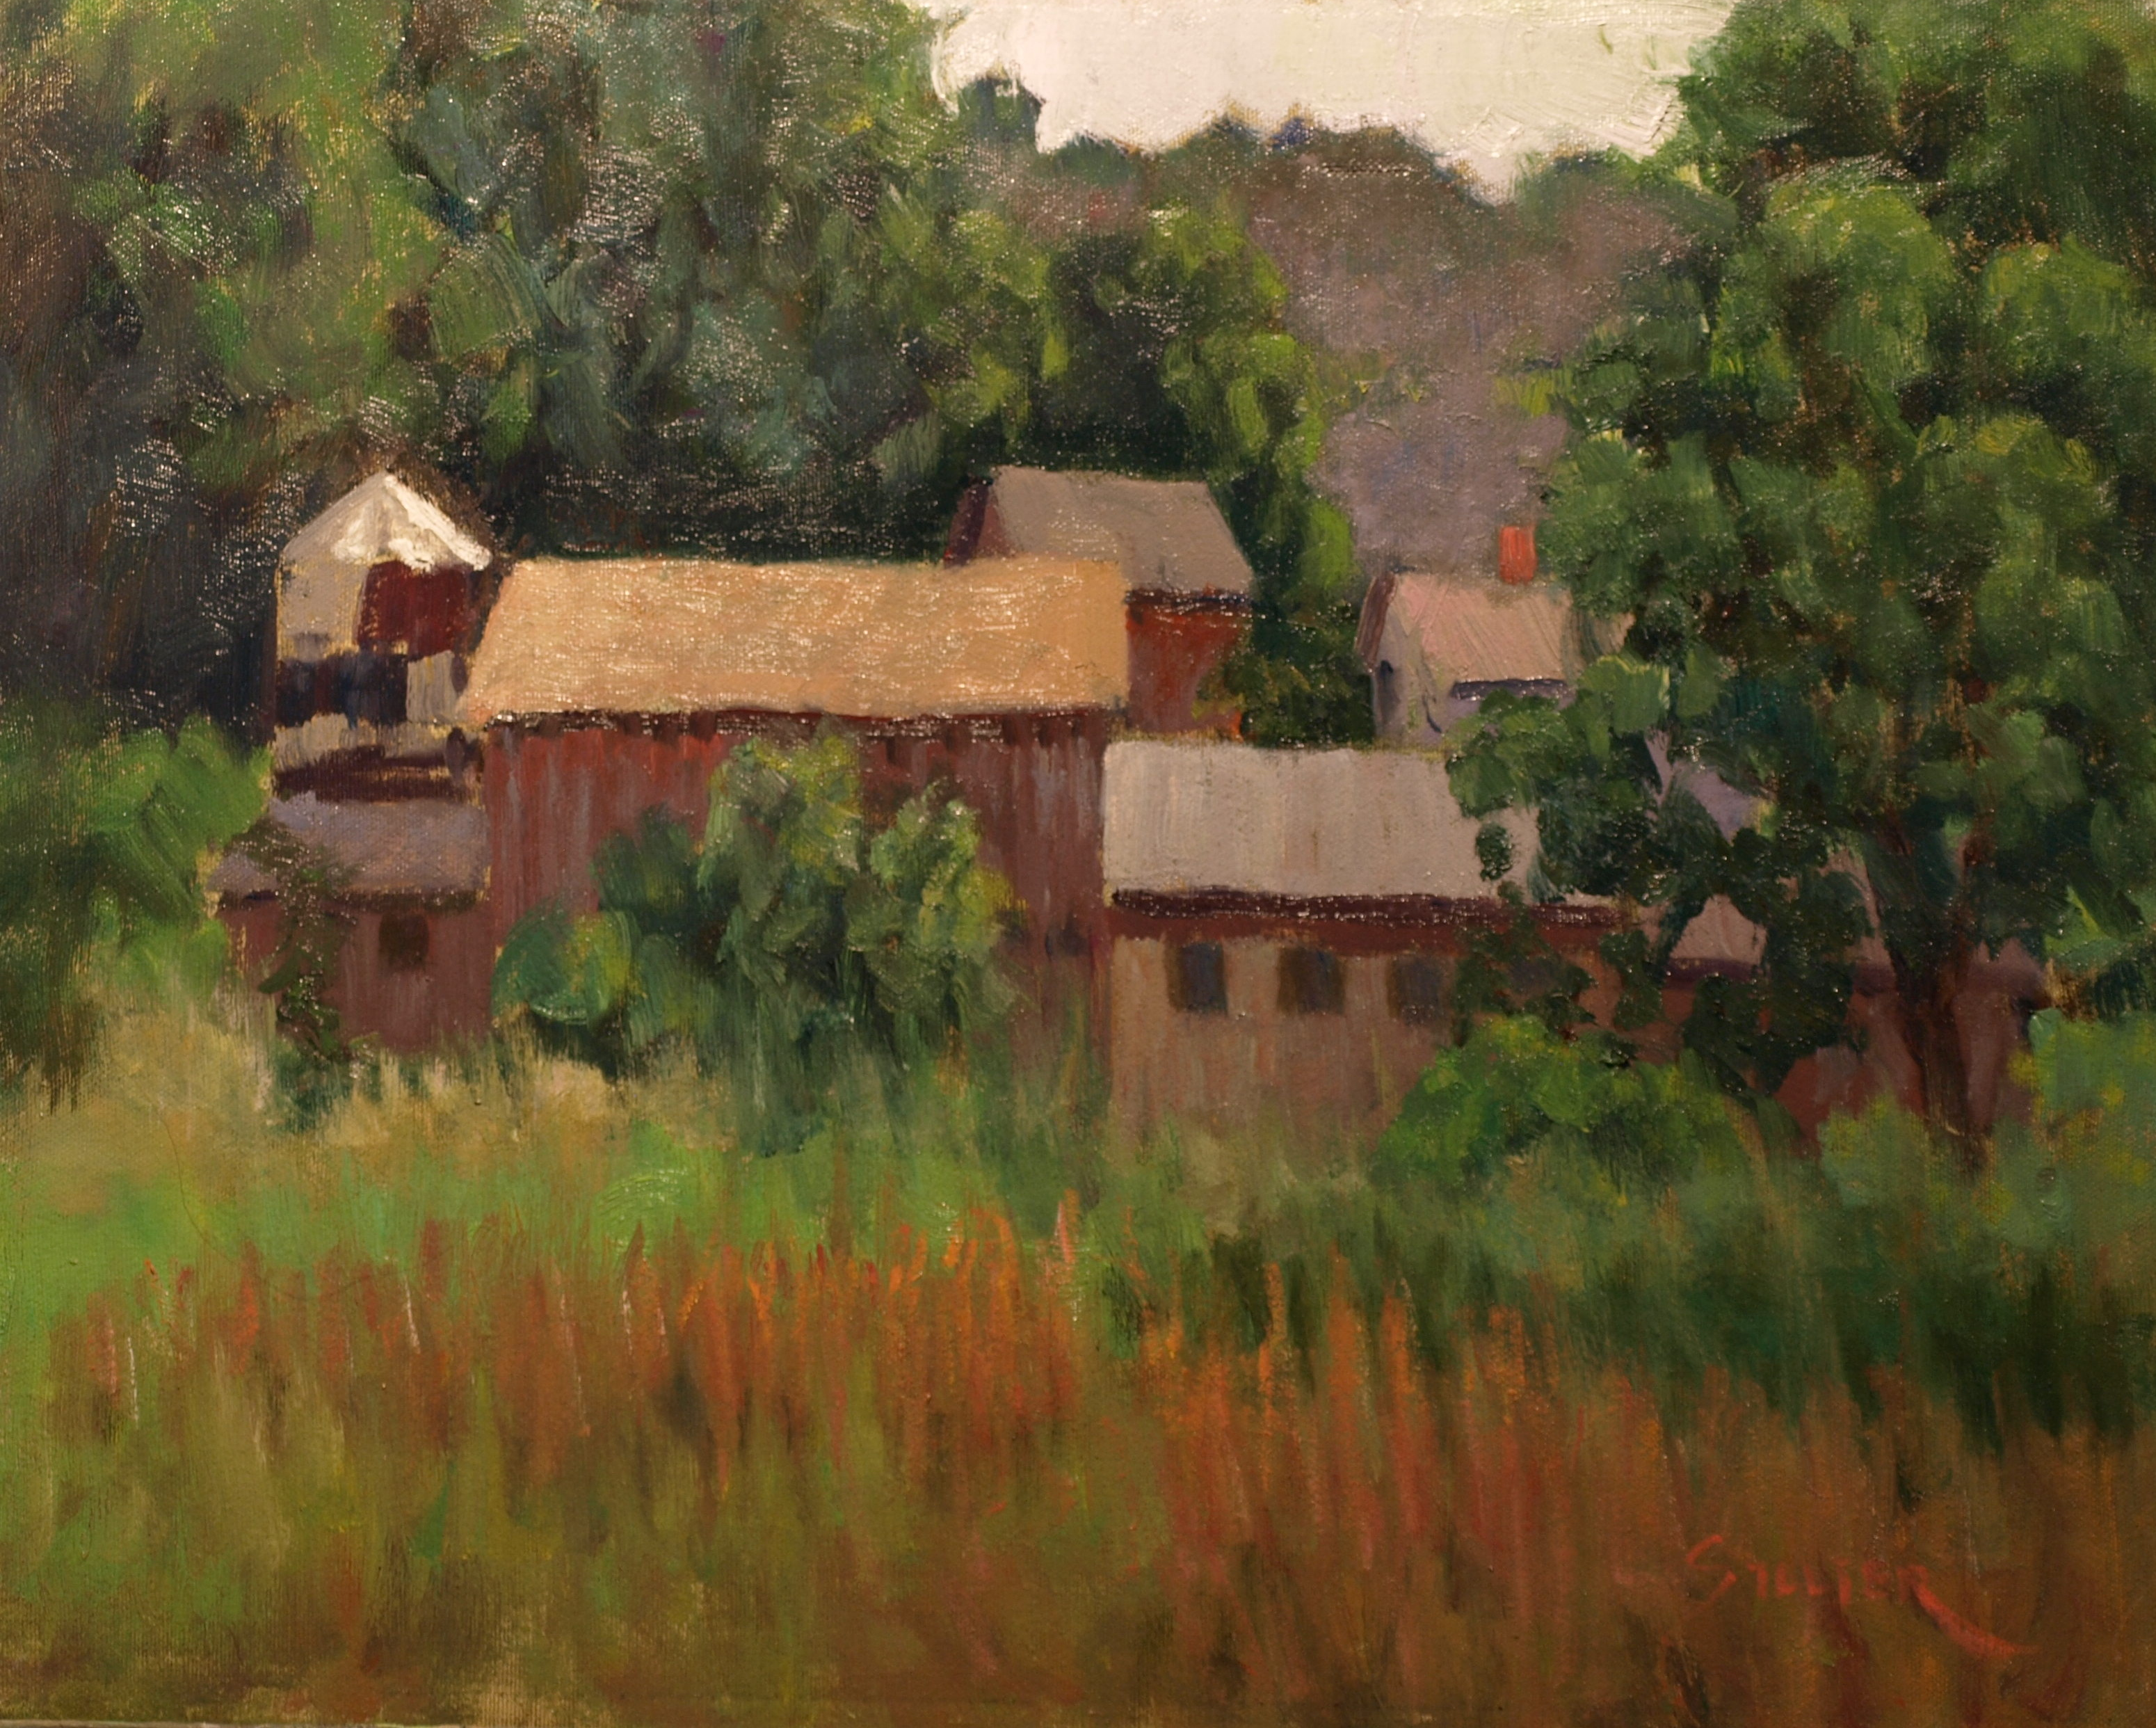 Farm on Mud Pond Road, Oil on Canvas, 16 x 20 Inches, by Richard Stalter, $450